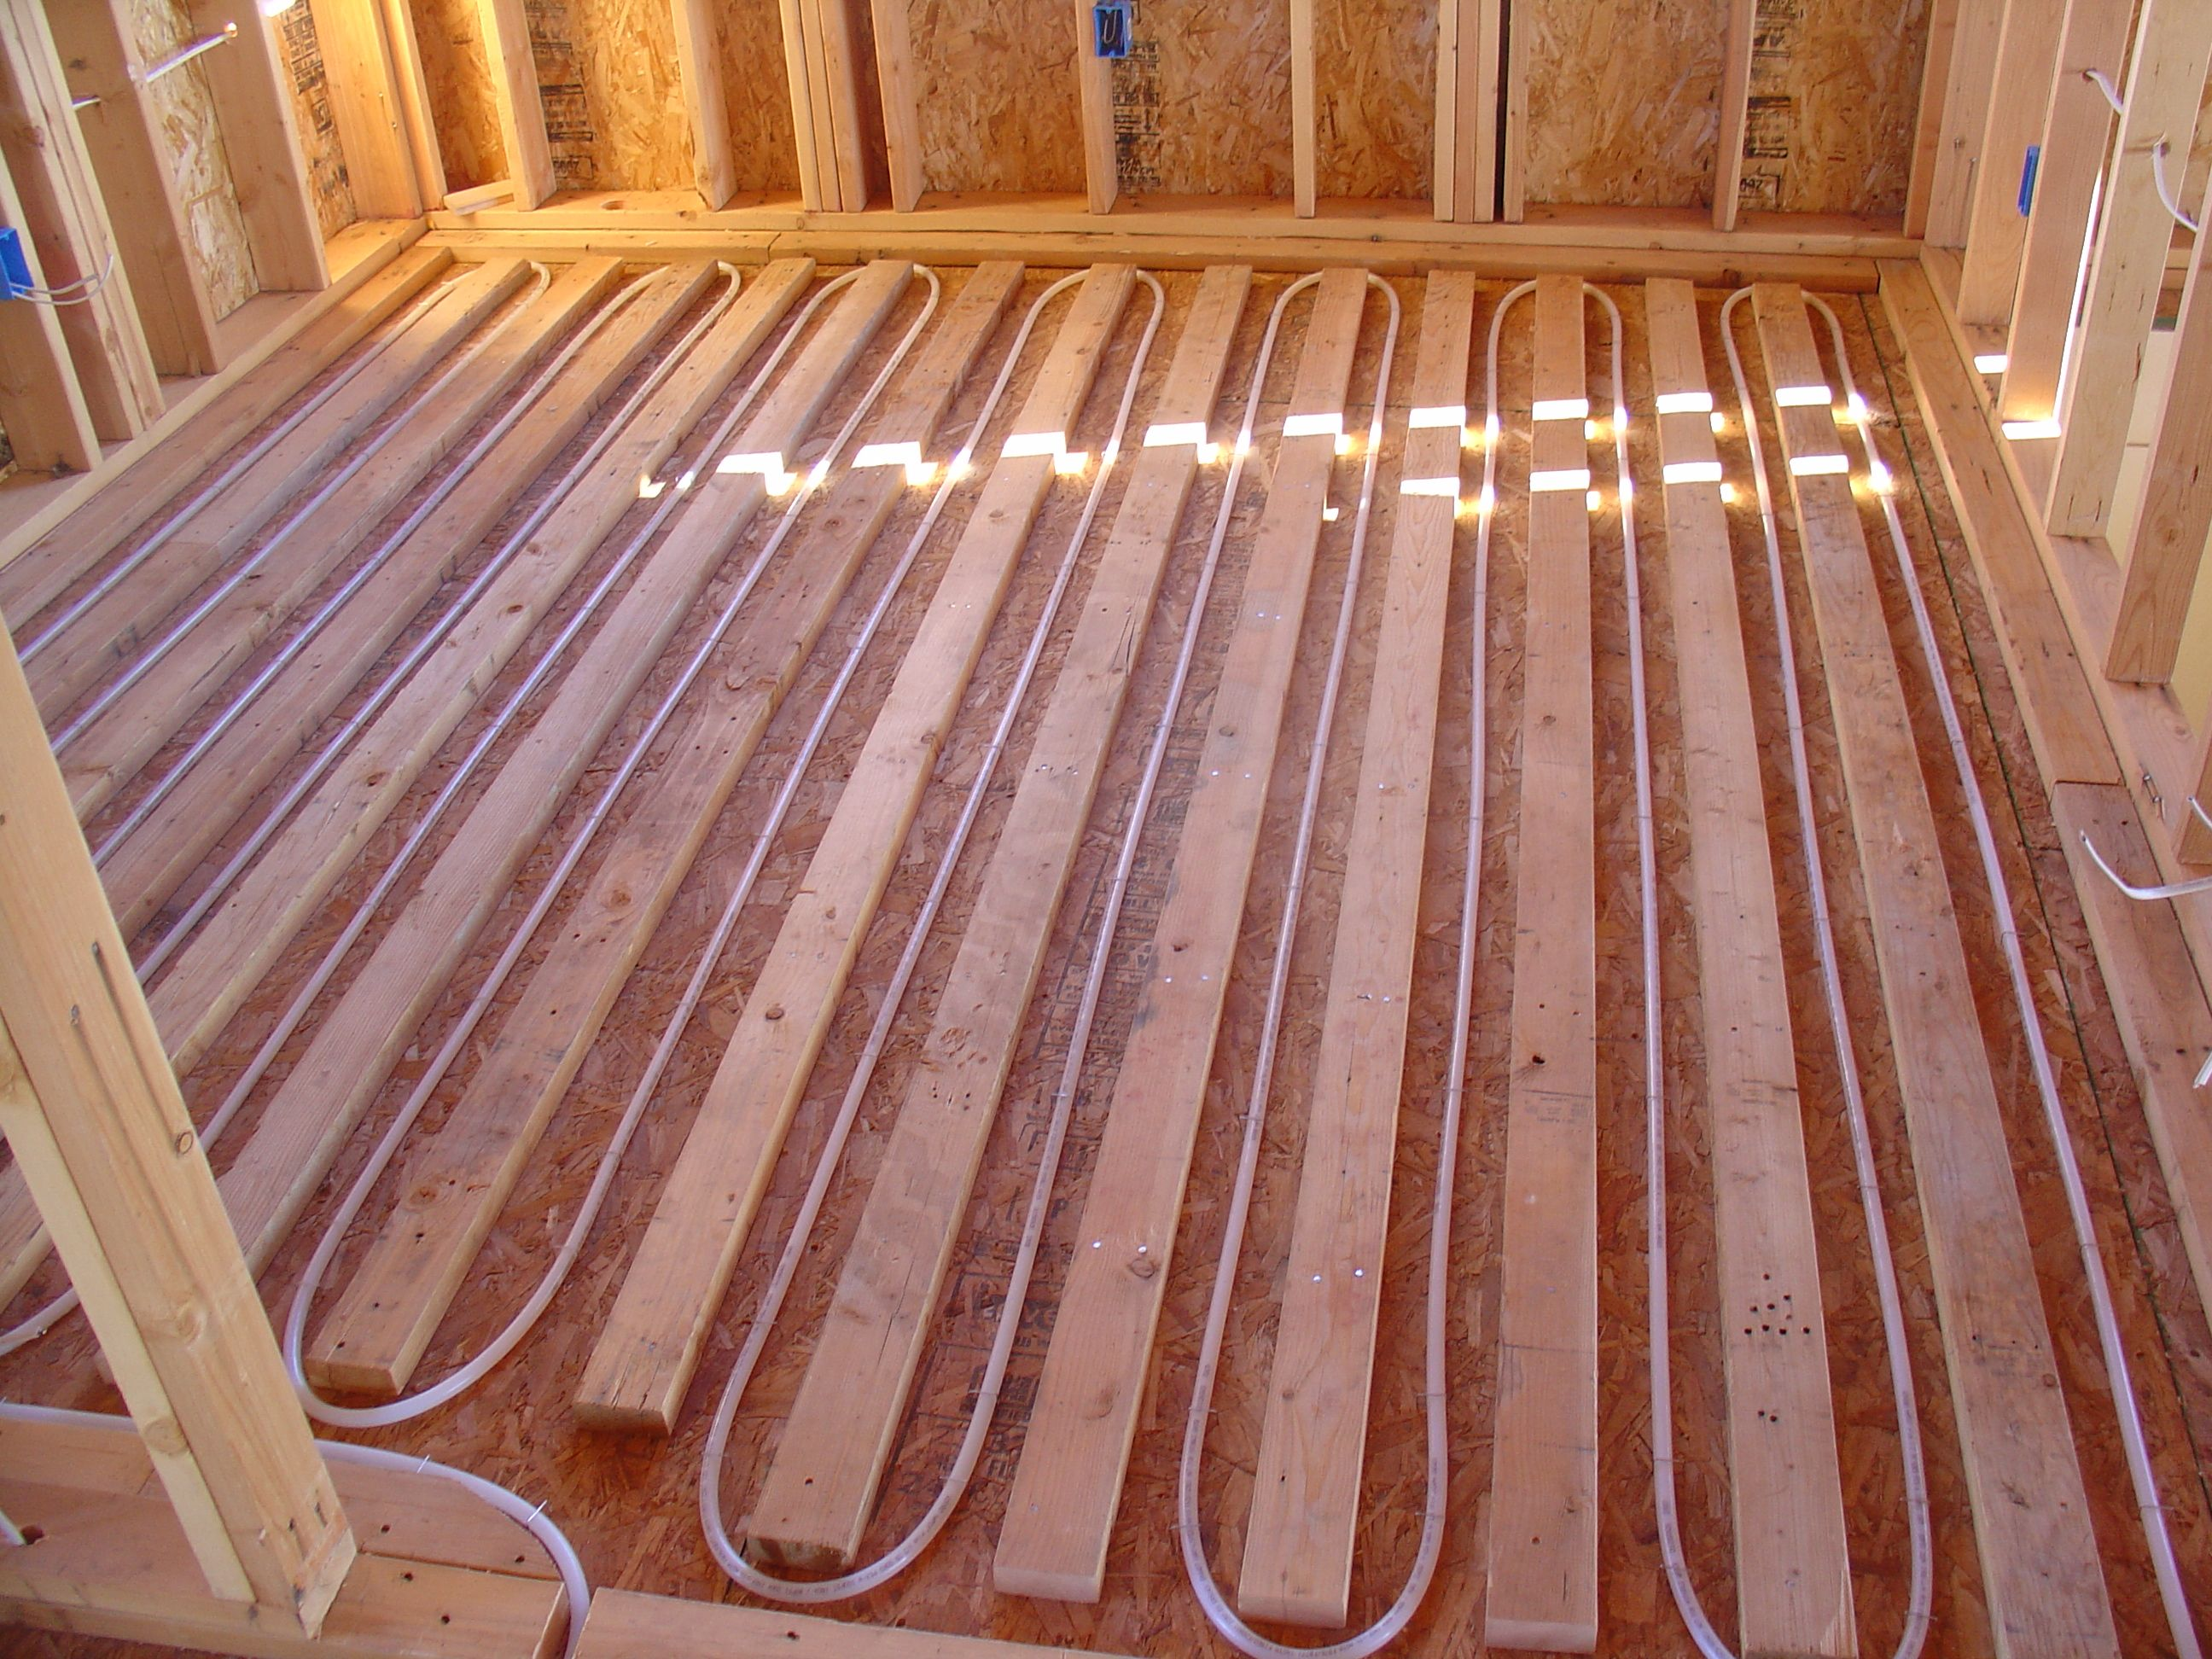 Wood Sleepers Nailed Dow To Give The Hardwood Floor Installer Something To Nail To Radiant Floor Heating Building A Container Home Heating And Plumbing